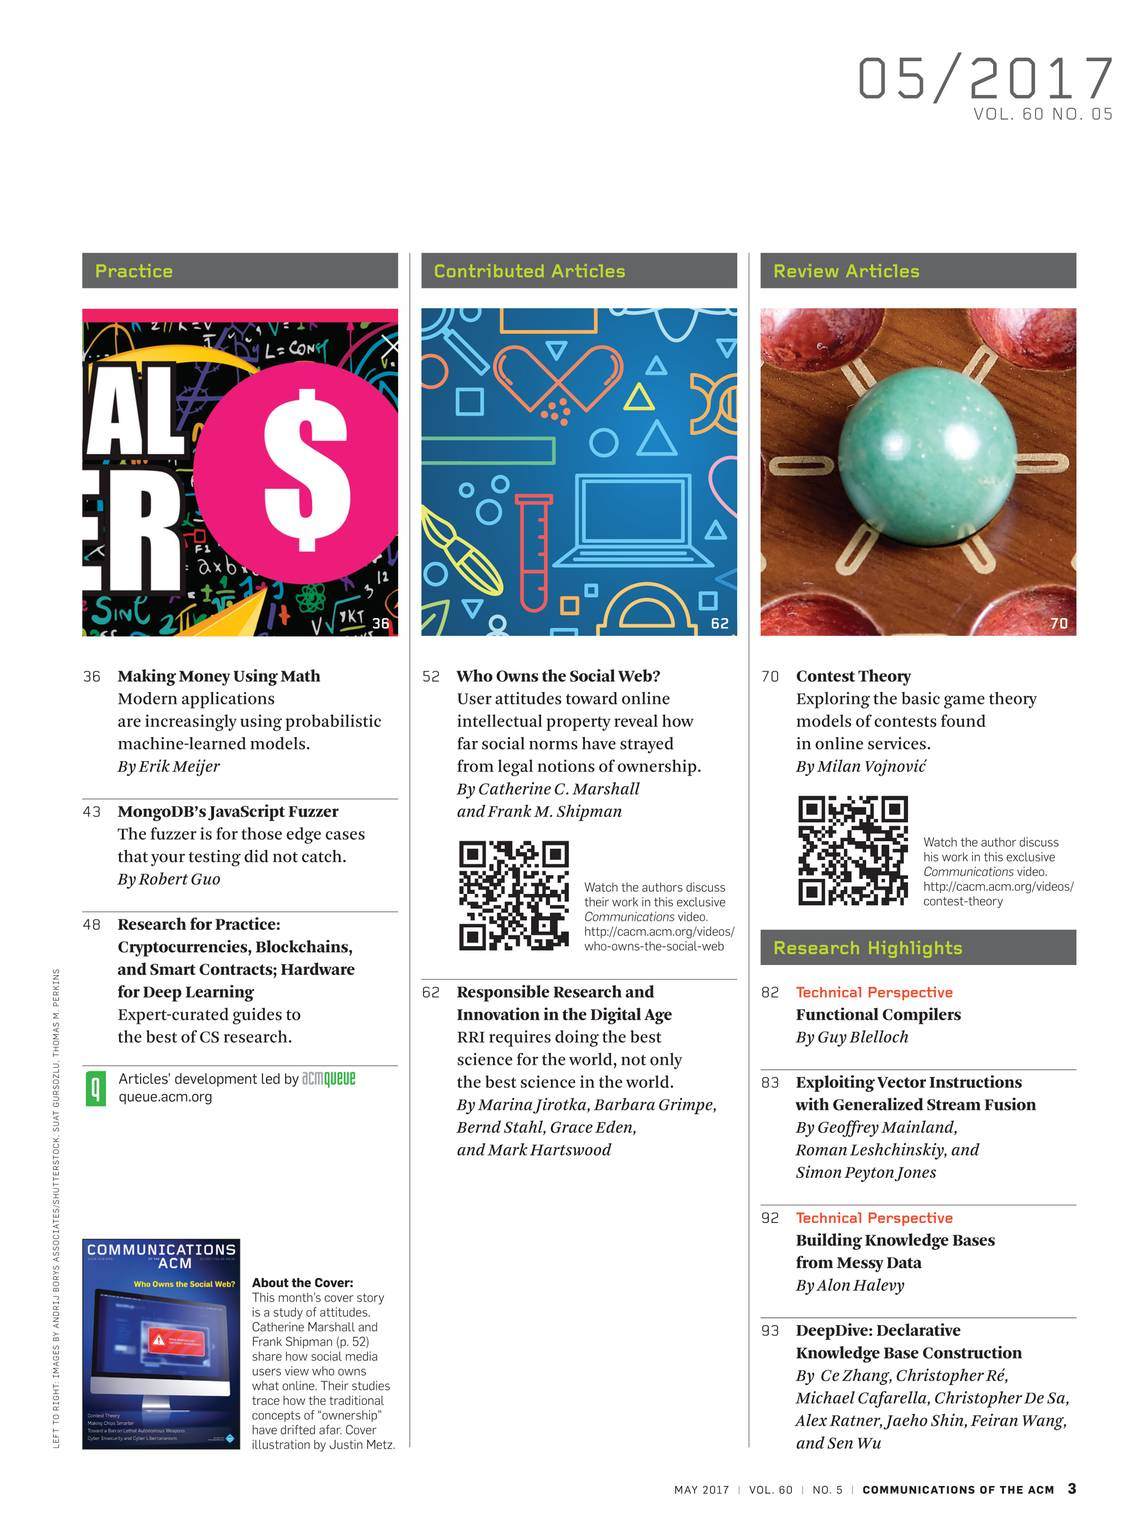 Communications of the ACM - May 2017 - page 2